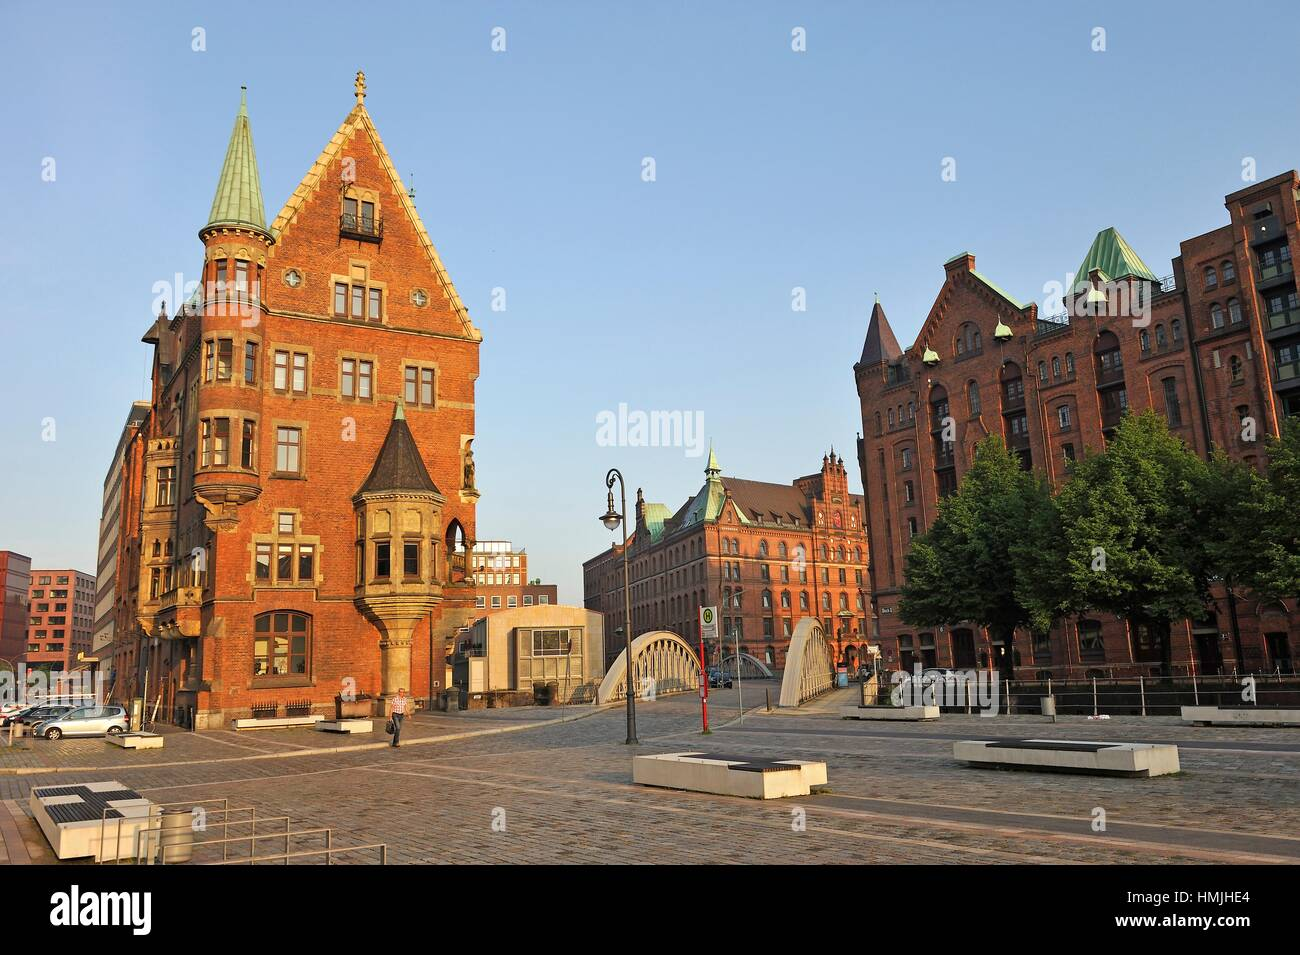 st annenplatz square in the speicherstadt city of. Black Bedroom Furniture Sets. Home Design Ideas